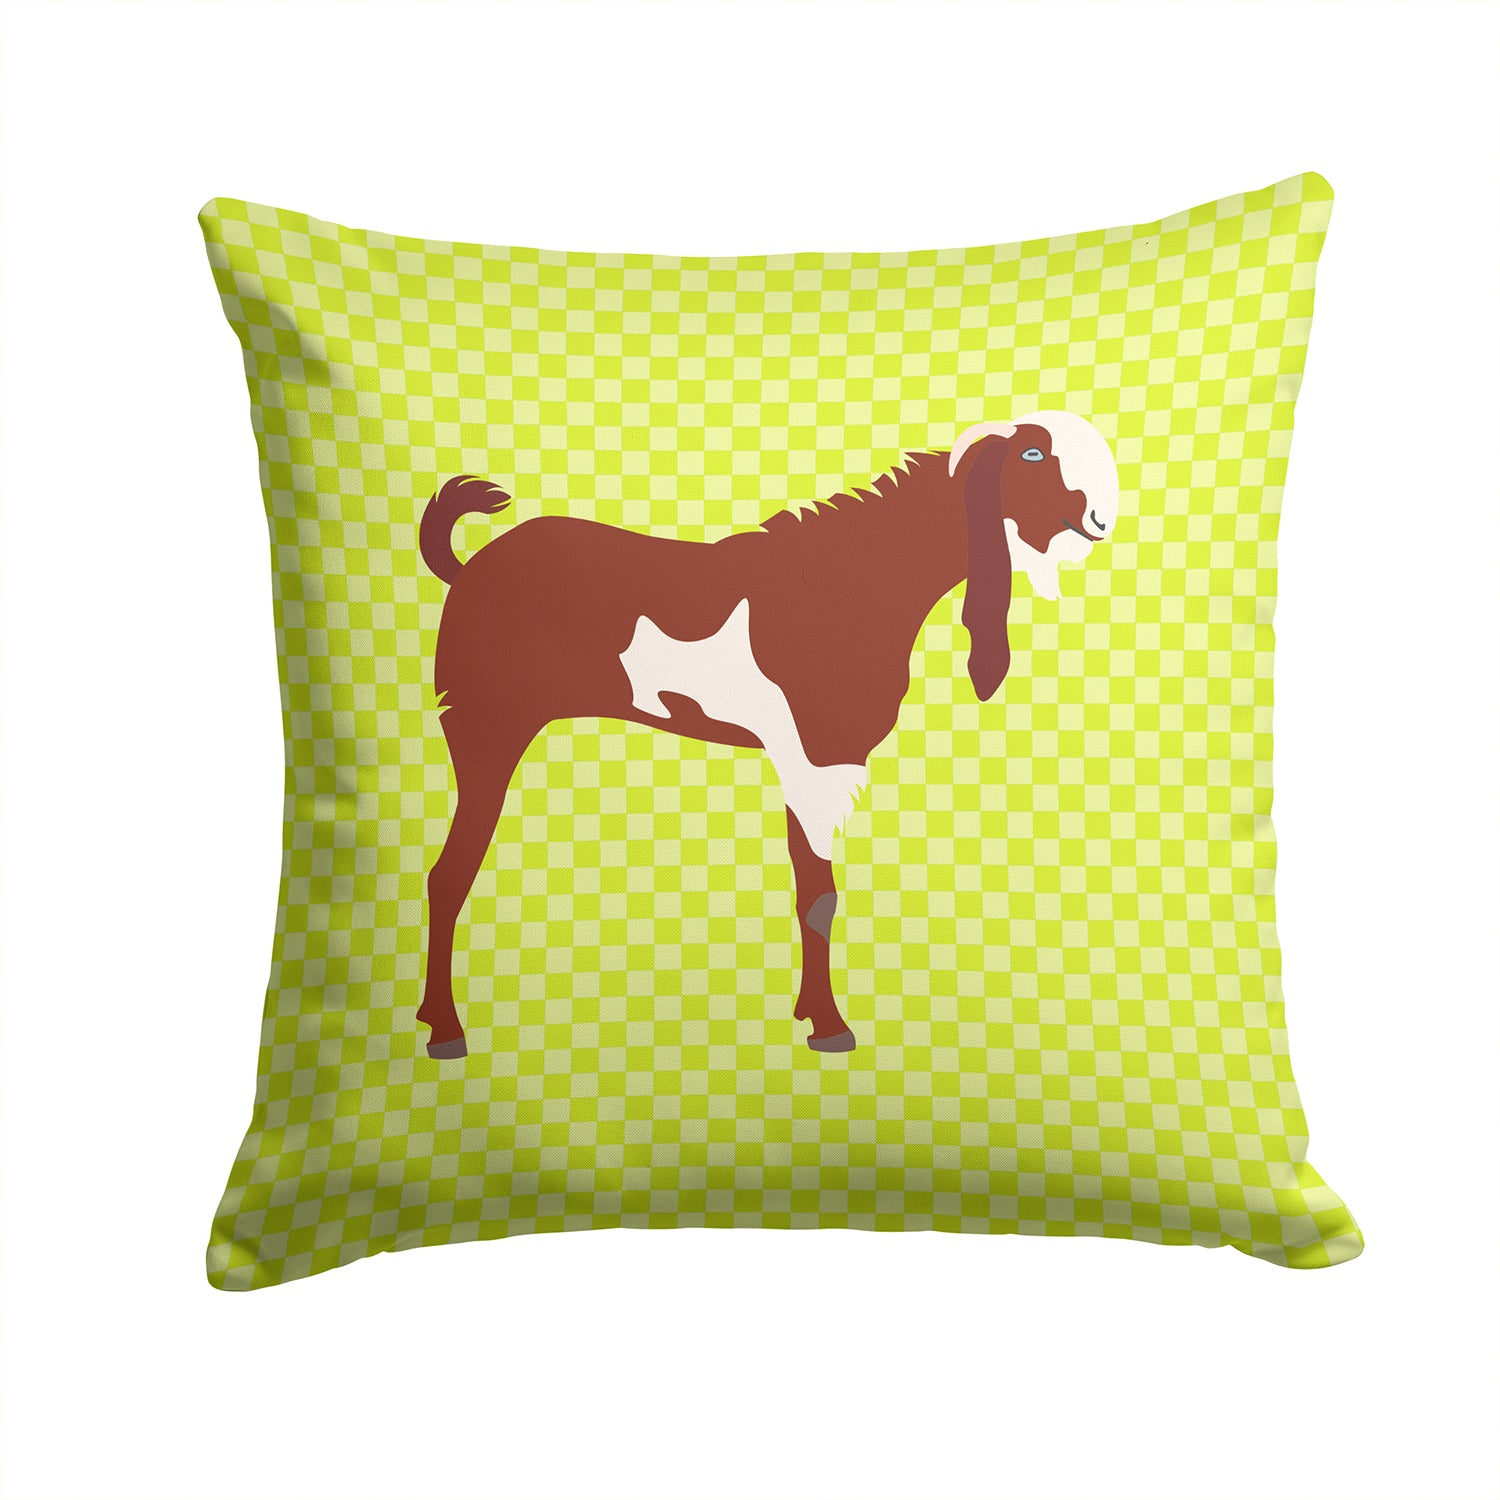 Jamnapari Goat Green Fabric Decorative Pillow BB7716PW1414 by Caroline's Treasures